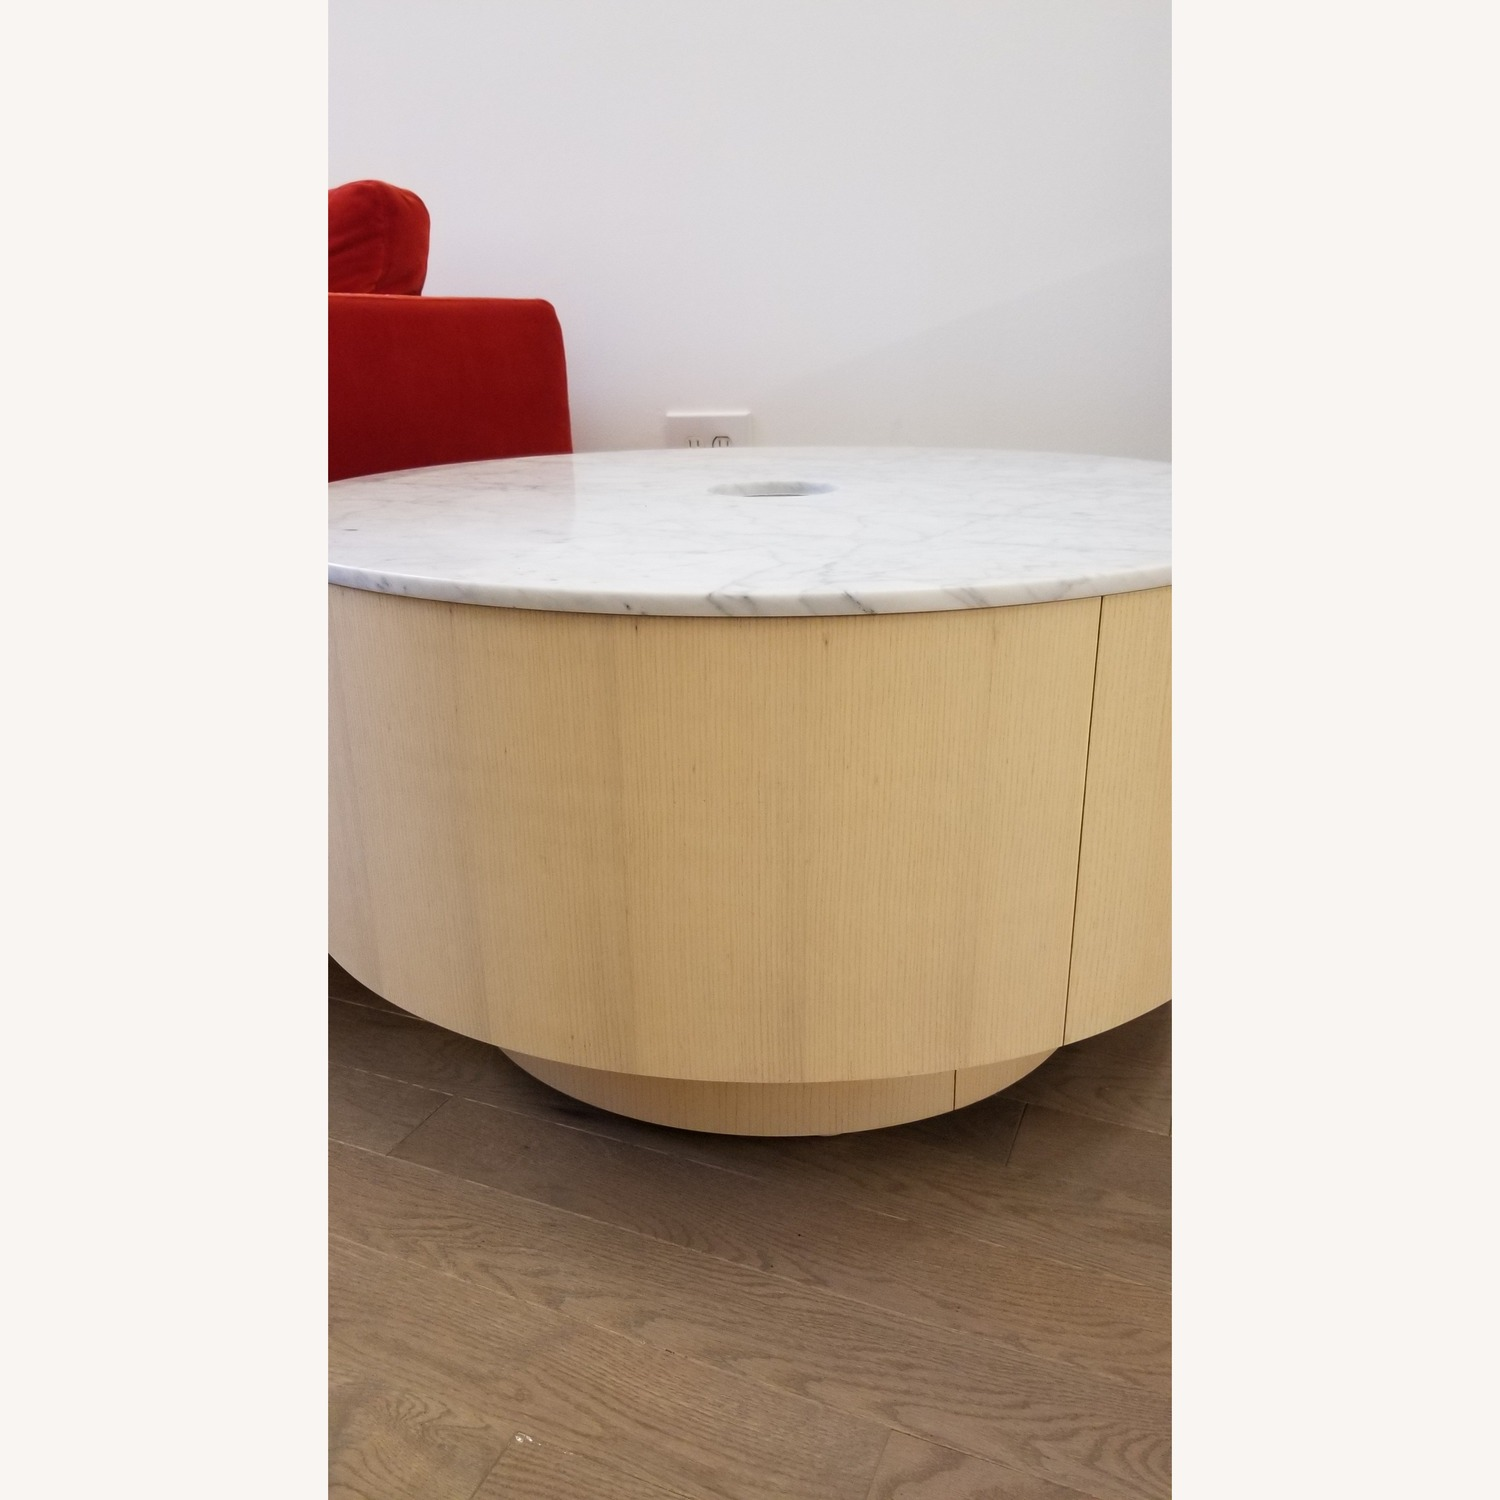 West elm coffee table - image-3